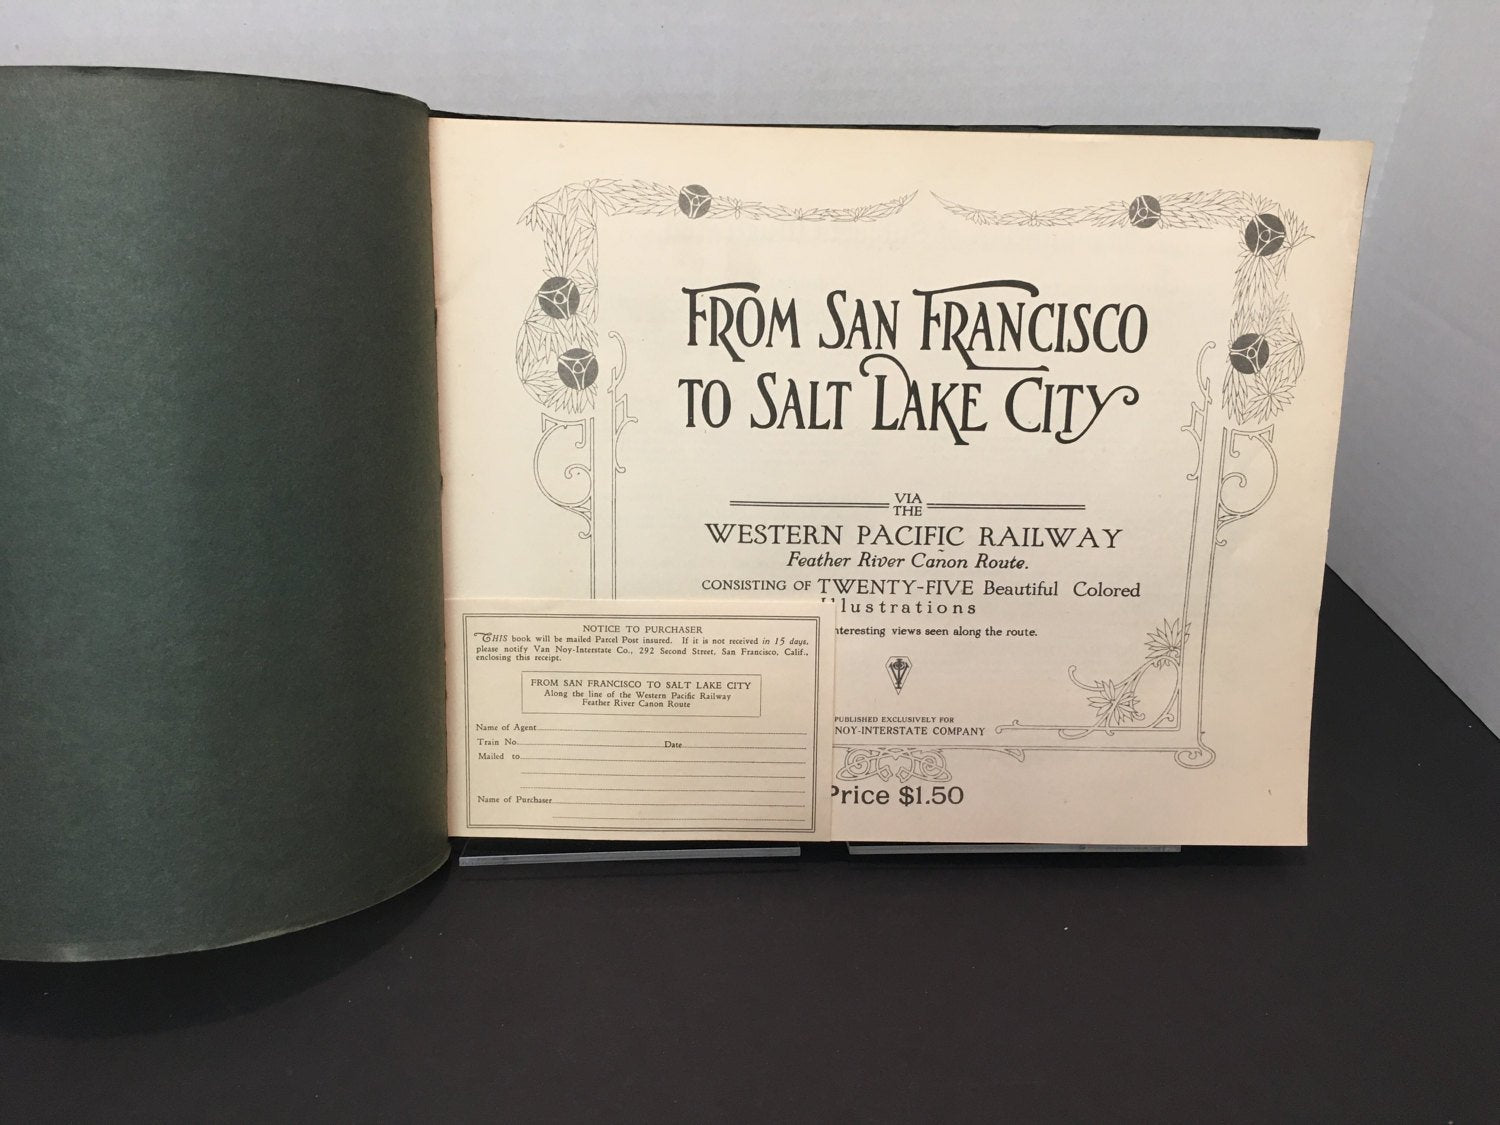 1920-Western Pacific Railway, From San Francisco to Salt Lake City, Feather River Canyon Route along the line Western Pacific Railway-